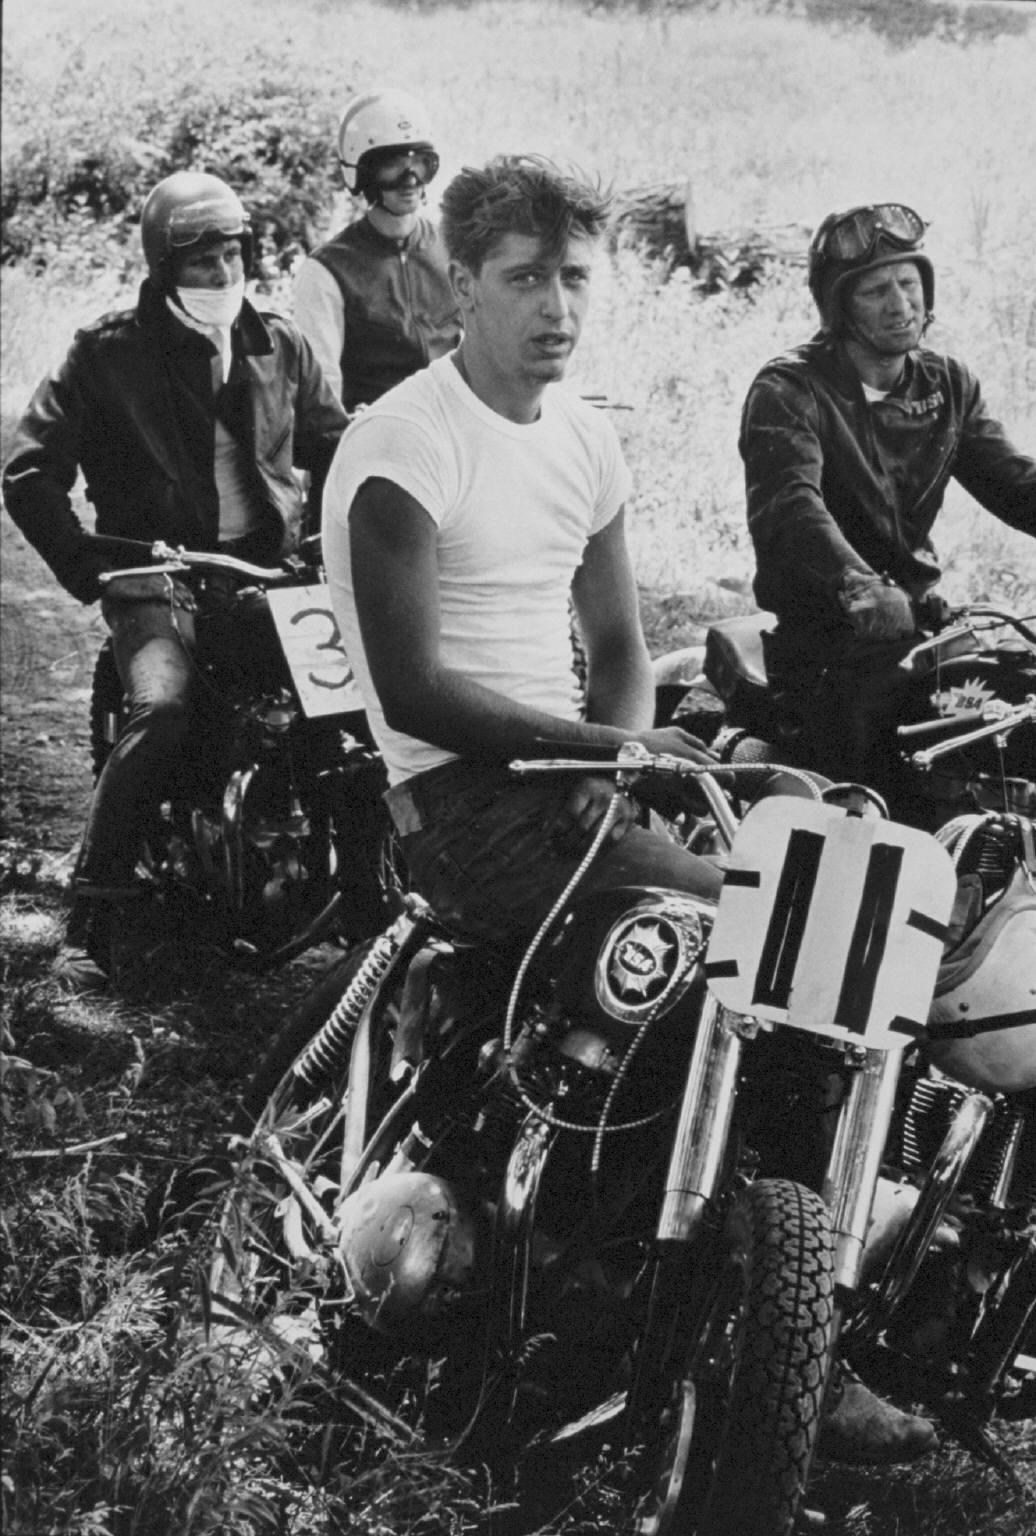 """""""Racers, McHenry, Illinois"""" from The Bikeriders by Danny Lyon  --circa 1963-66."""